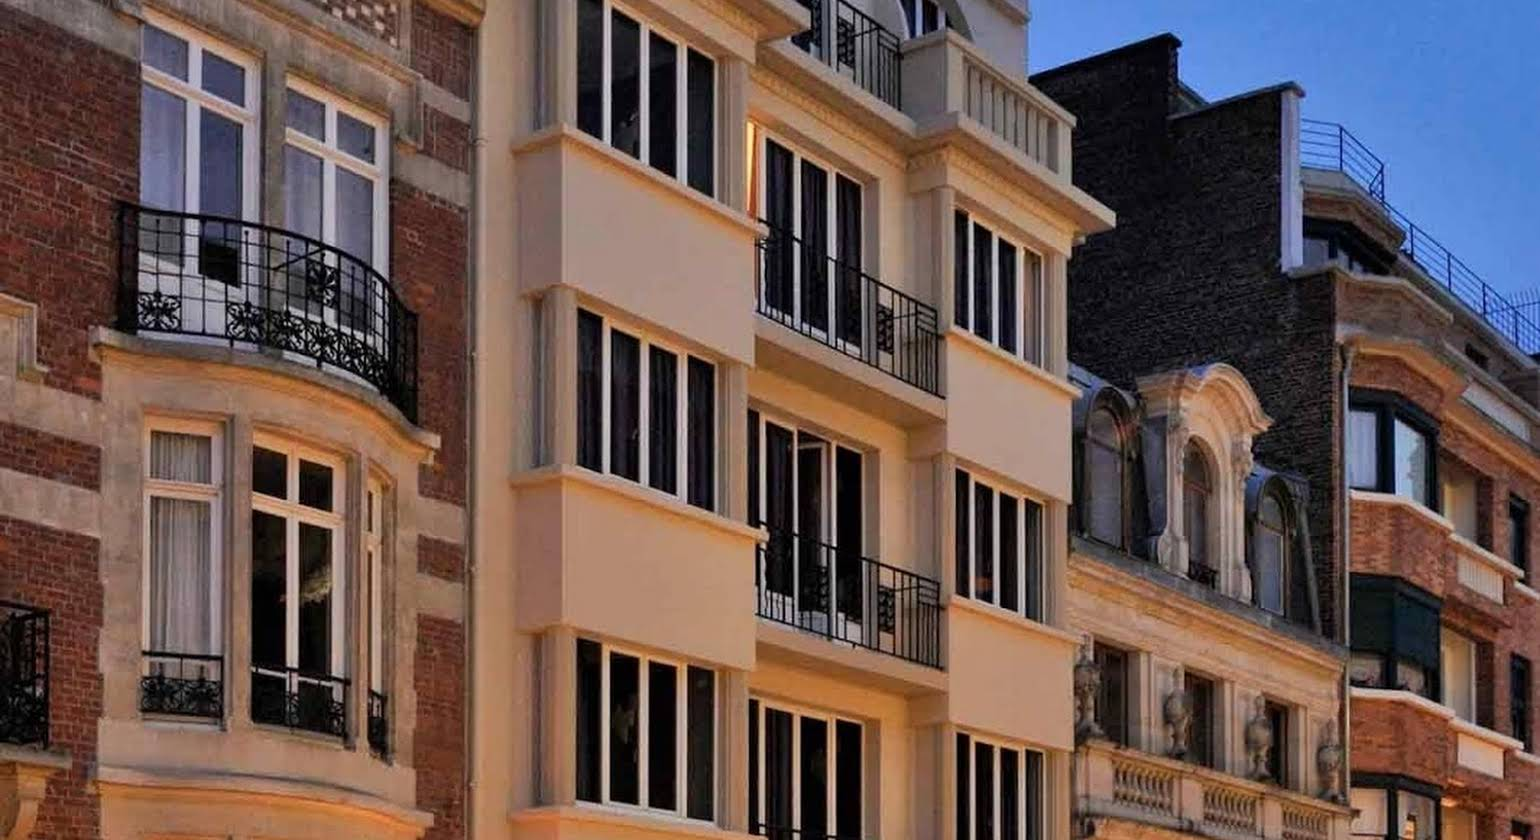 ibis Styles Lille Grand Place